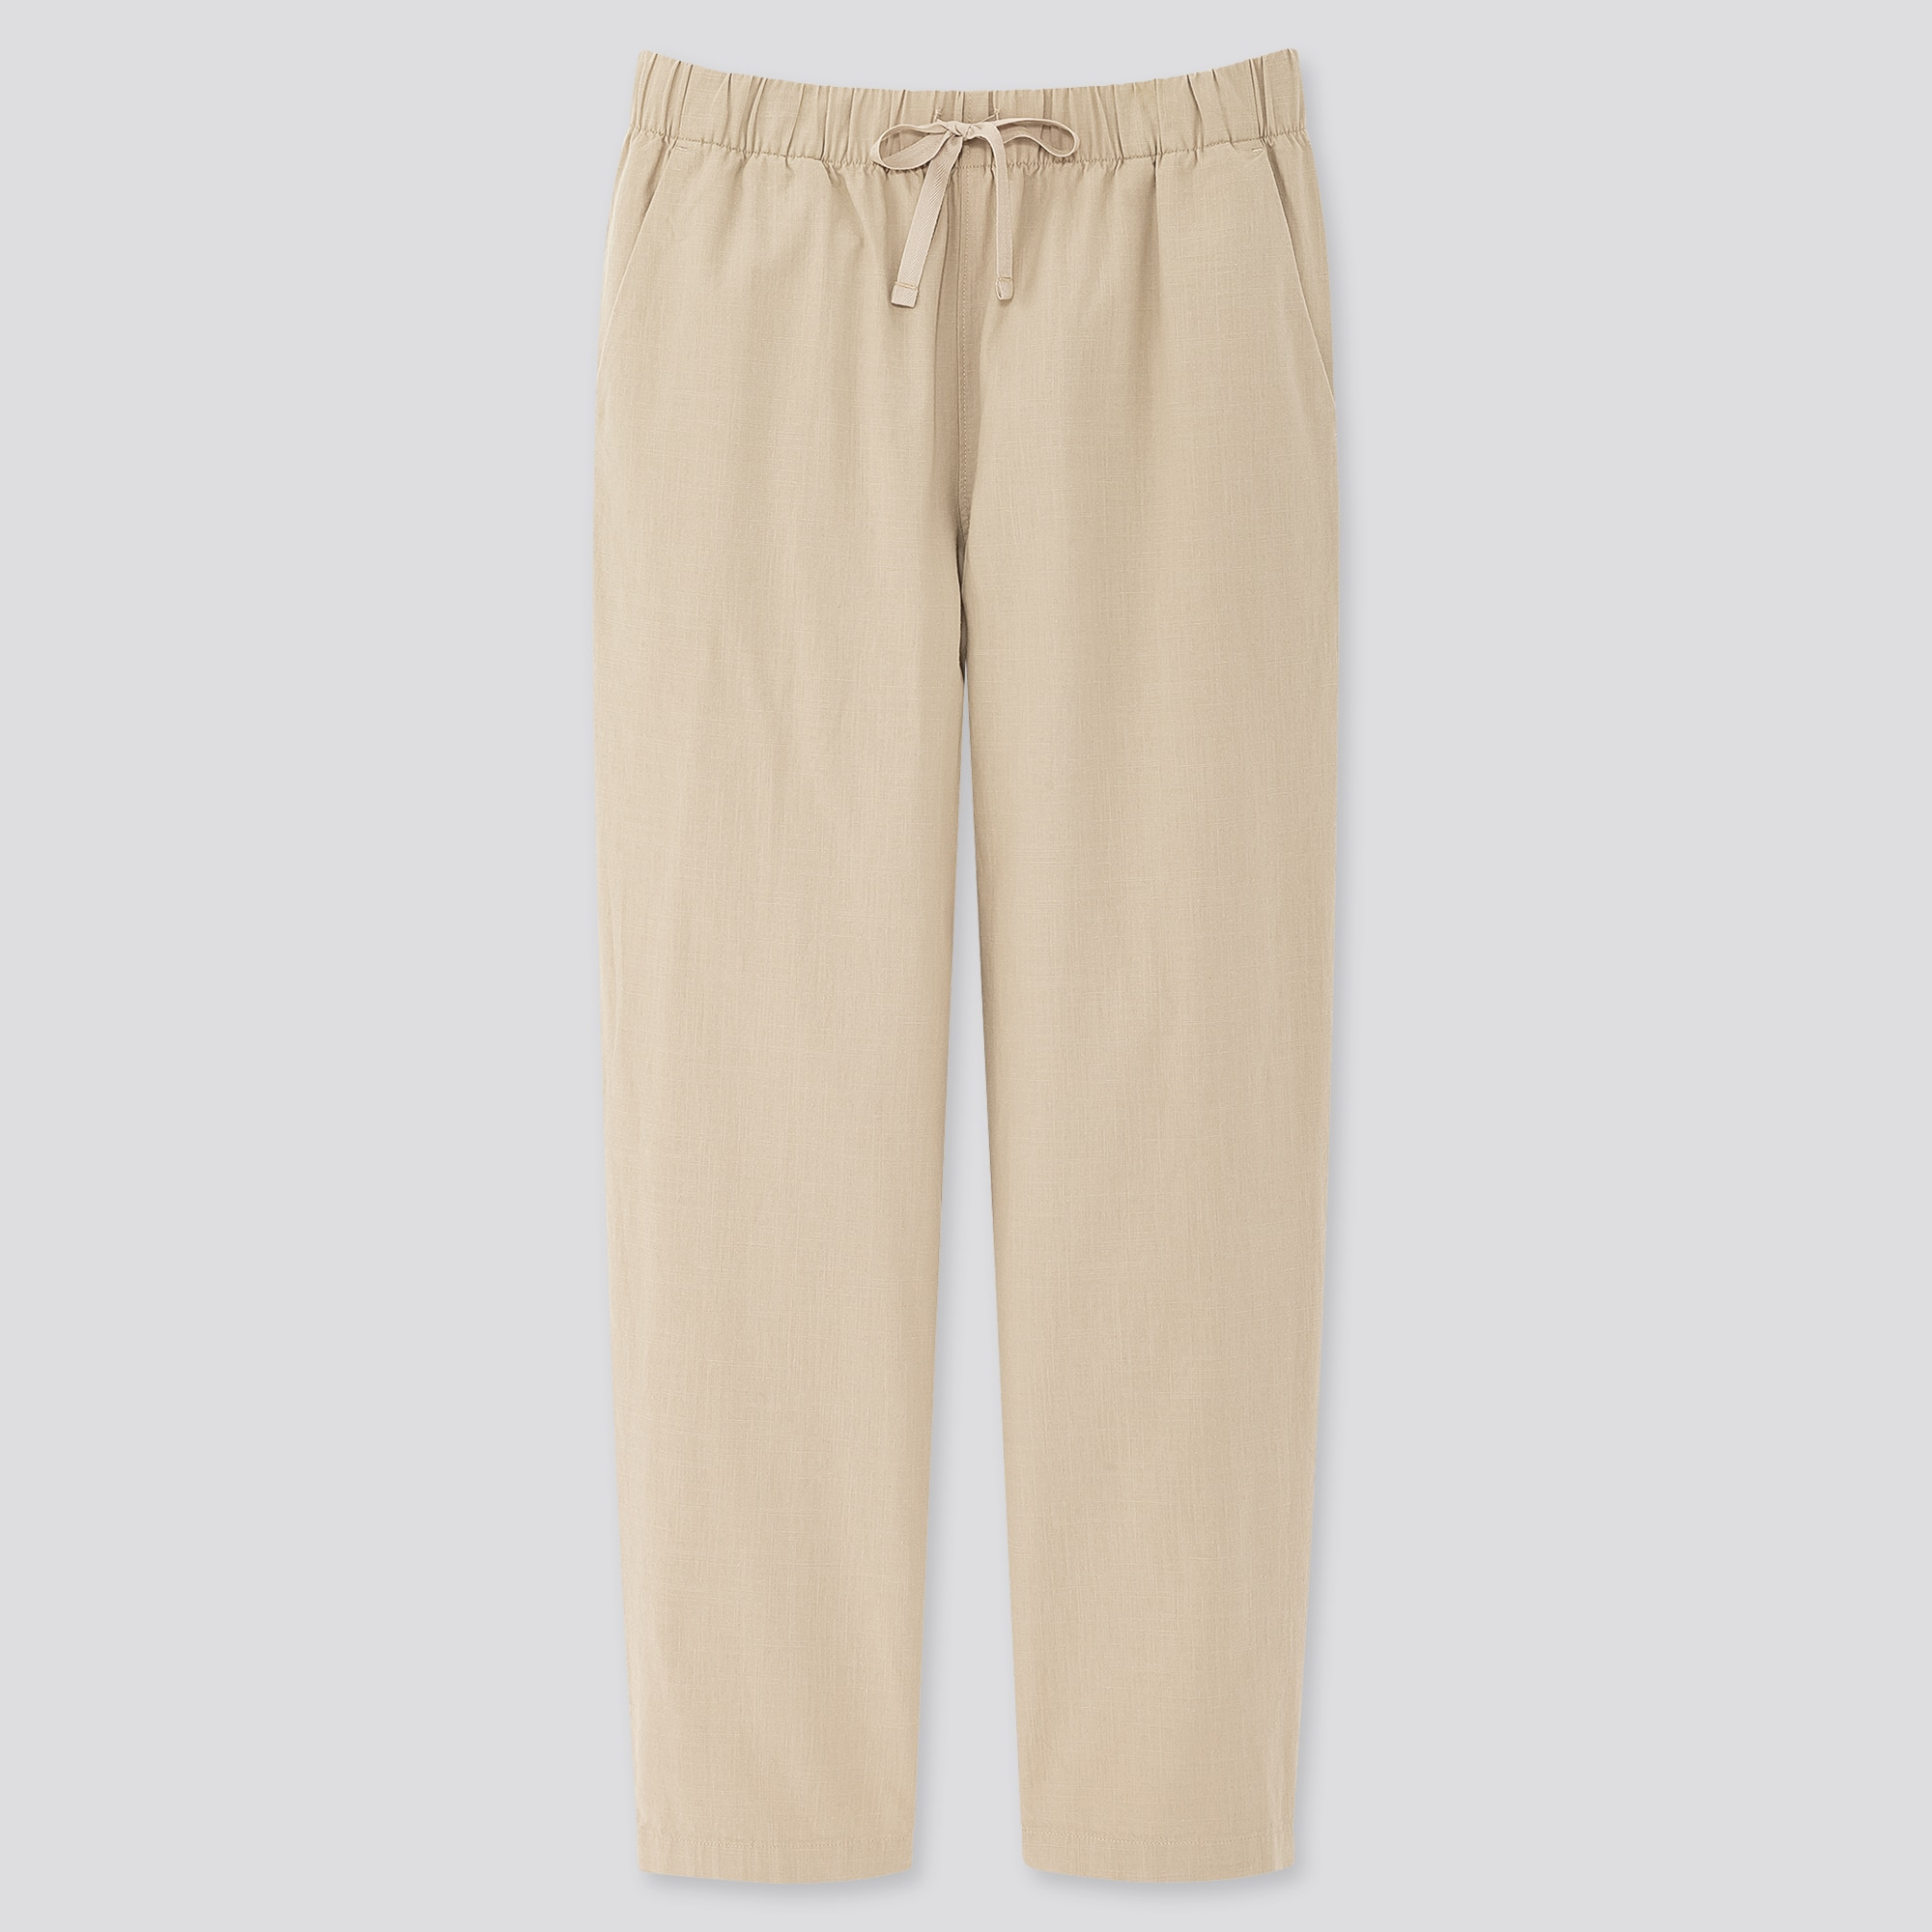 WOMEN COTTON RELAX ANKLE-LENGTH PANTS